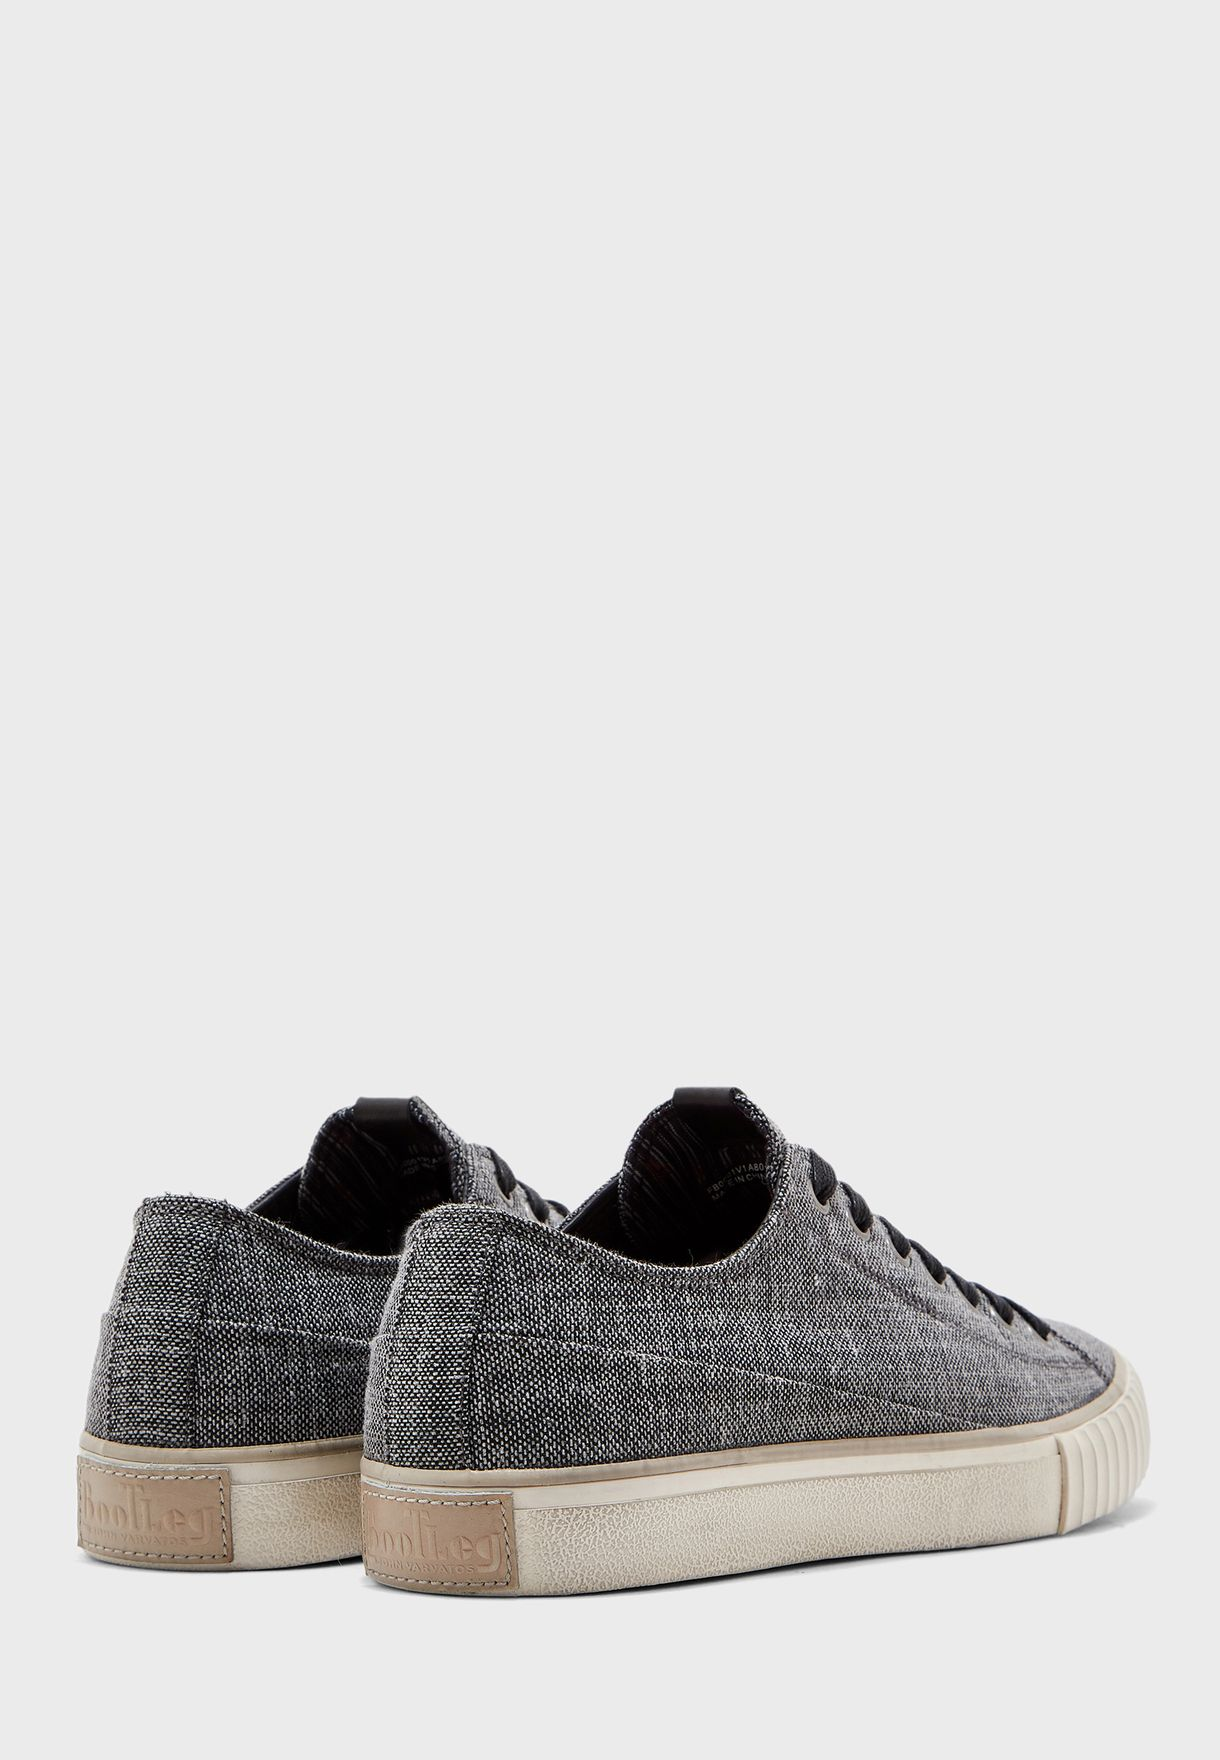 2 Tone Blended Sneakers